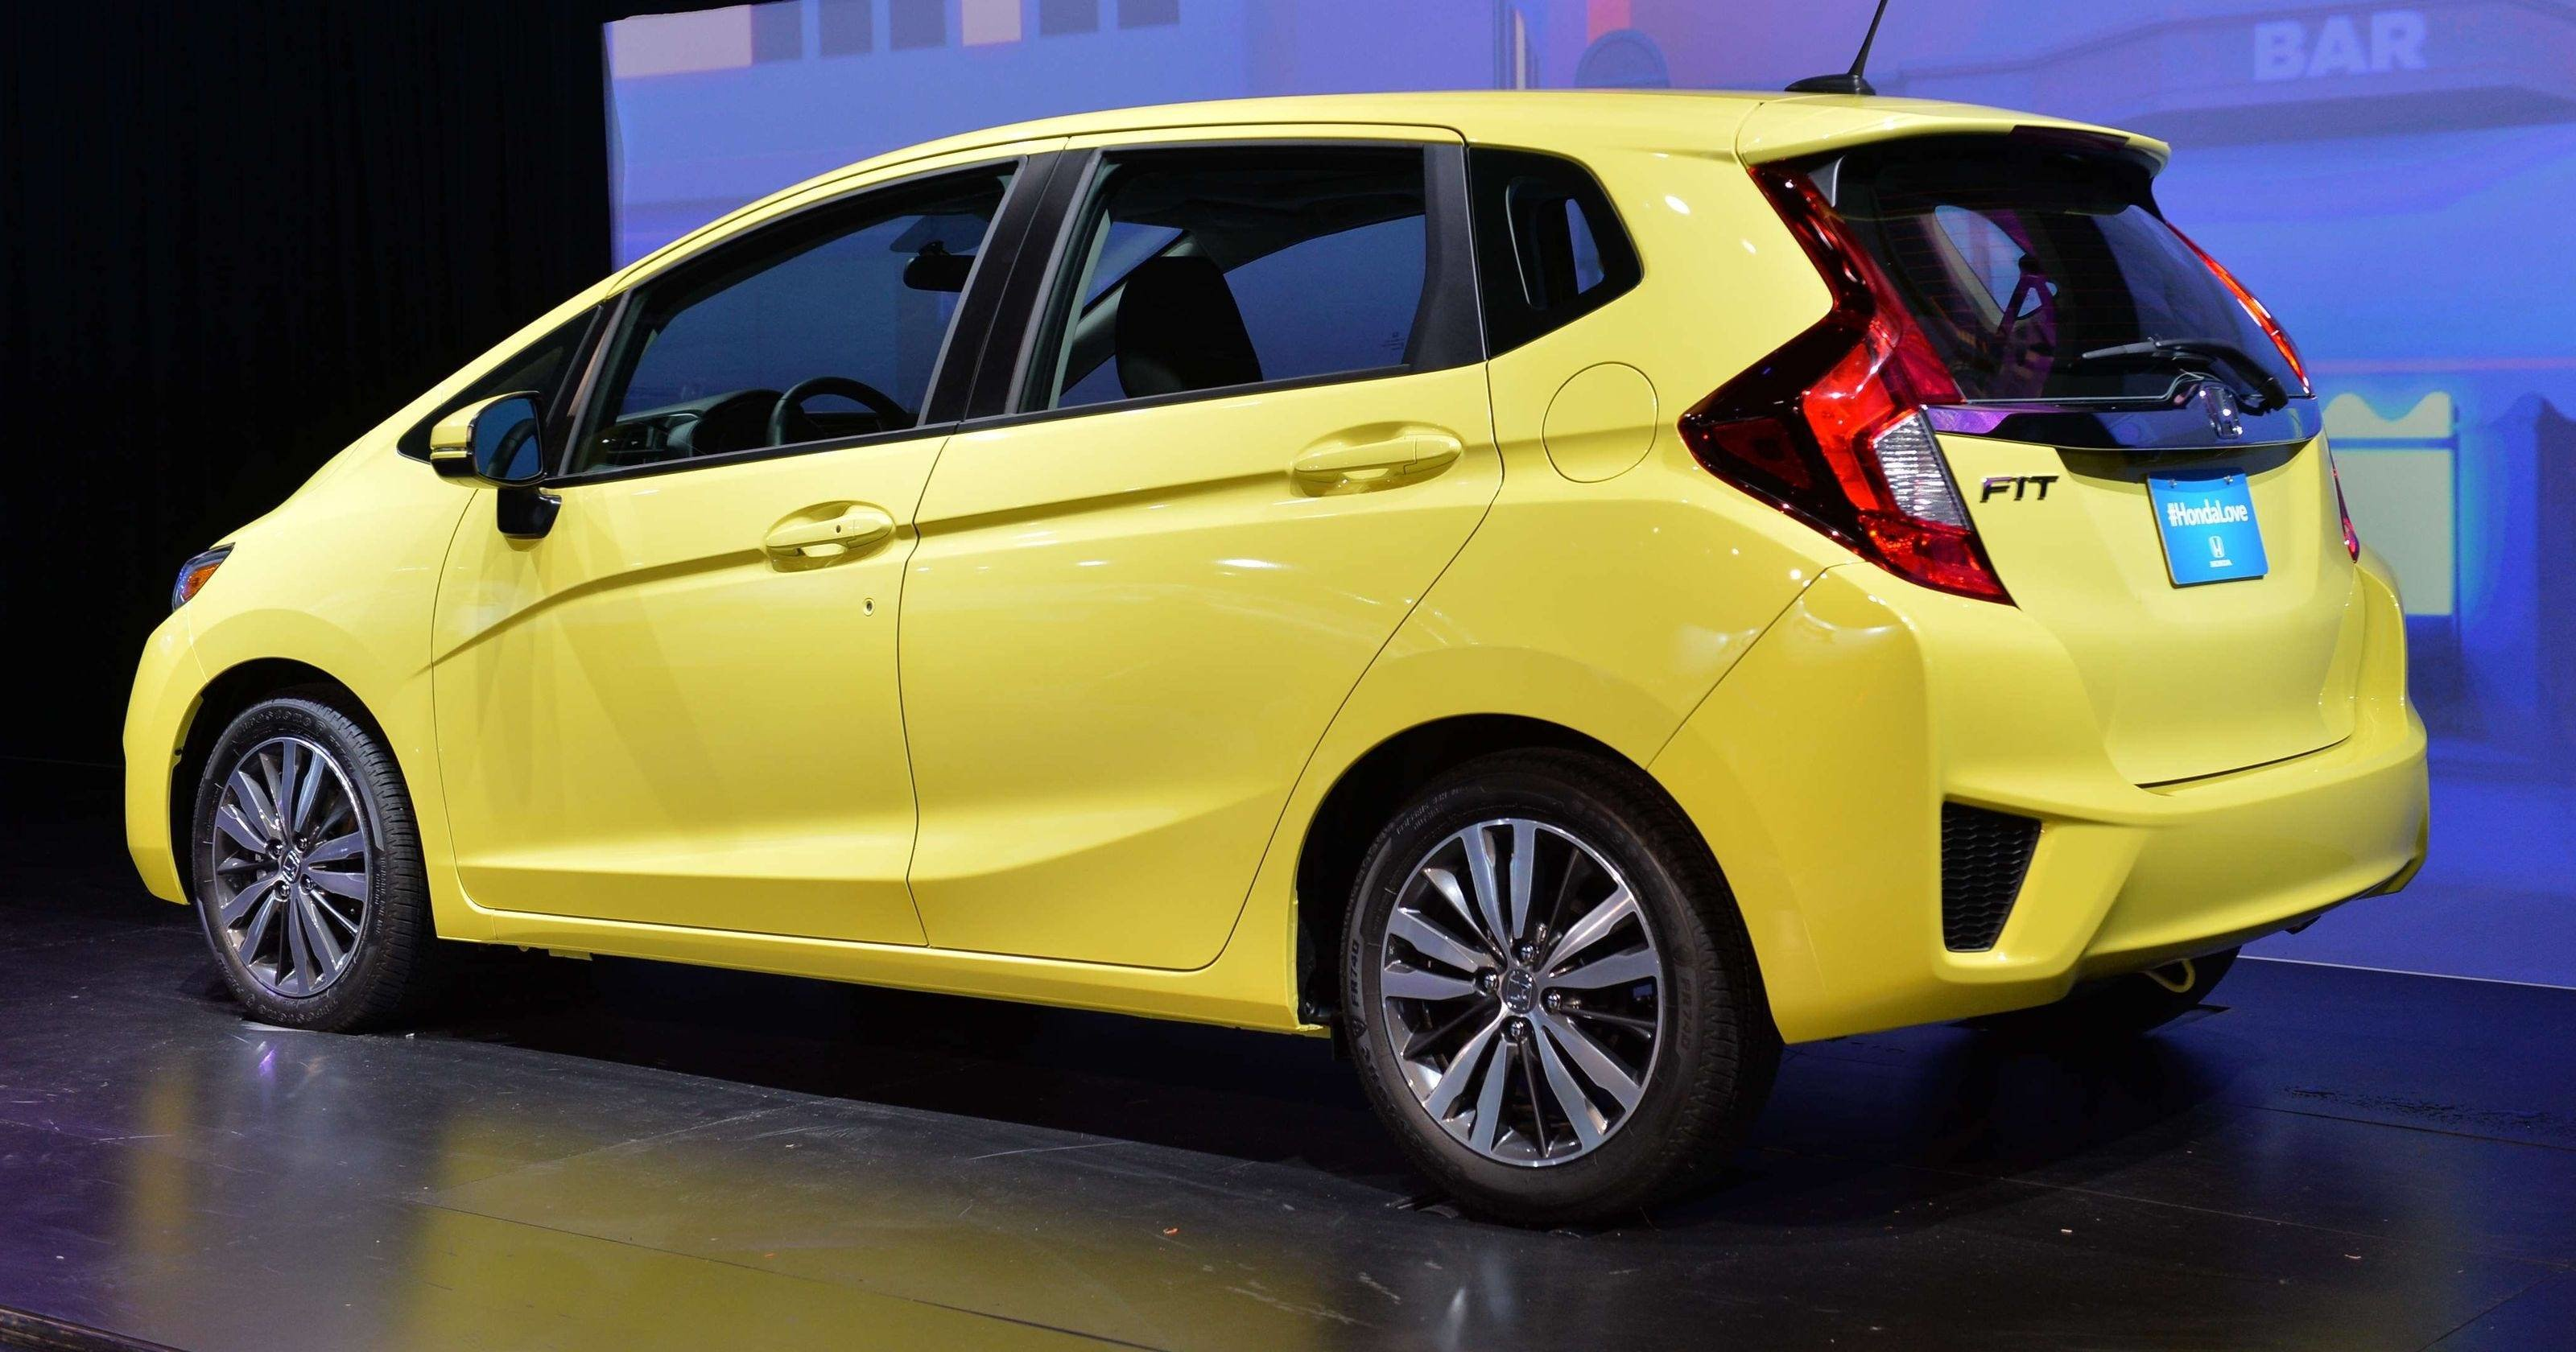 New Honda S 2015 Fit A Small Car With Big Dreams On This Month